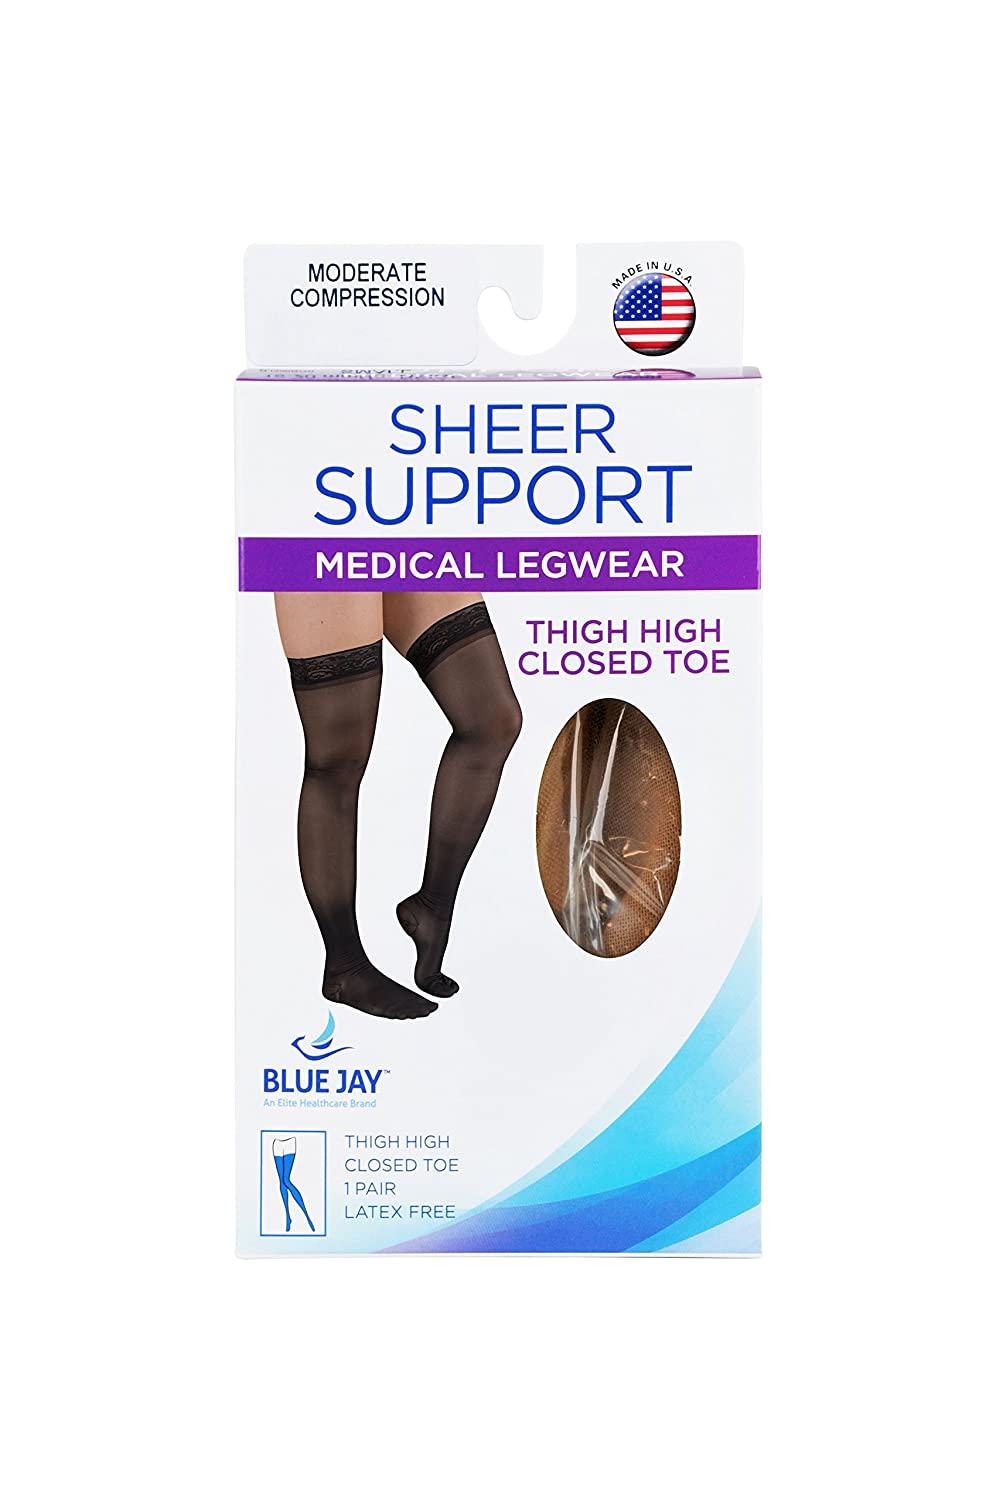 XX-Large 0.1 Pound Complete Medical Ladies/' Sheer Moderate Support 15-20 mmHg Thigh with Stay-top Complete Medical Manufacturing Group BJ380BG2X Complete Medical Ladies Sheer Moderate Support 15-20 mmHg Thigh with Stay-top Beige